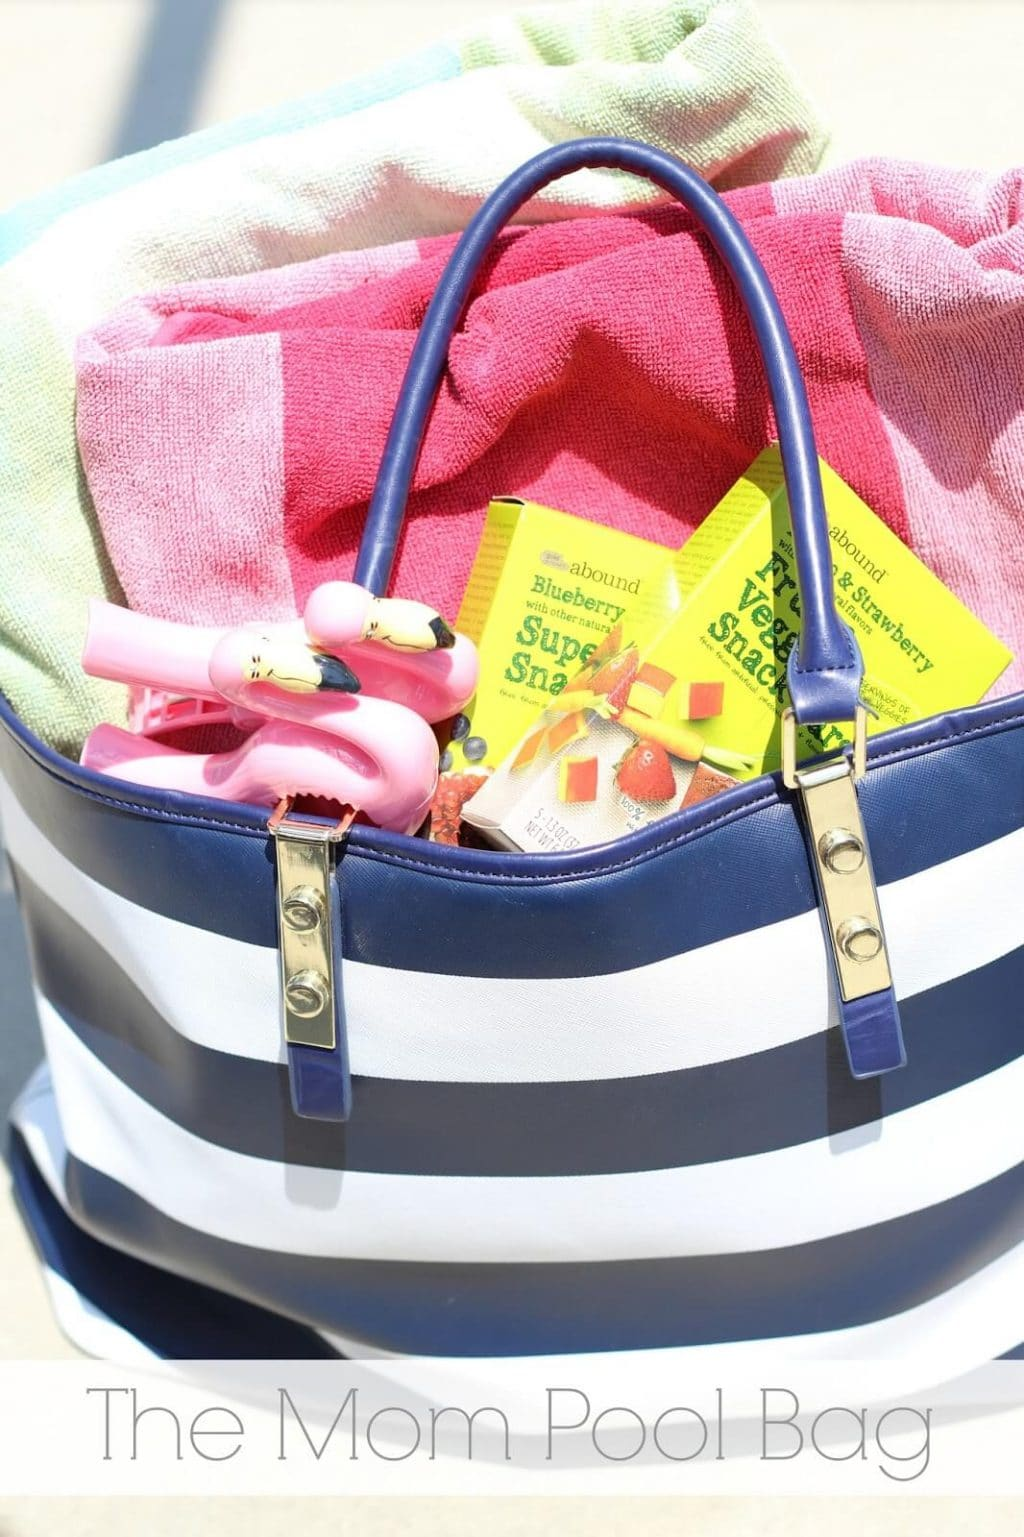 Mom Pool bag essentials with CVS Gold Emblem Abound